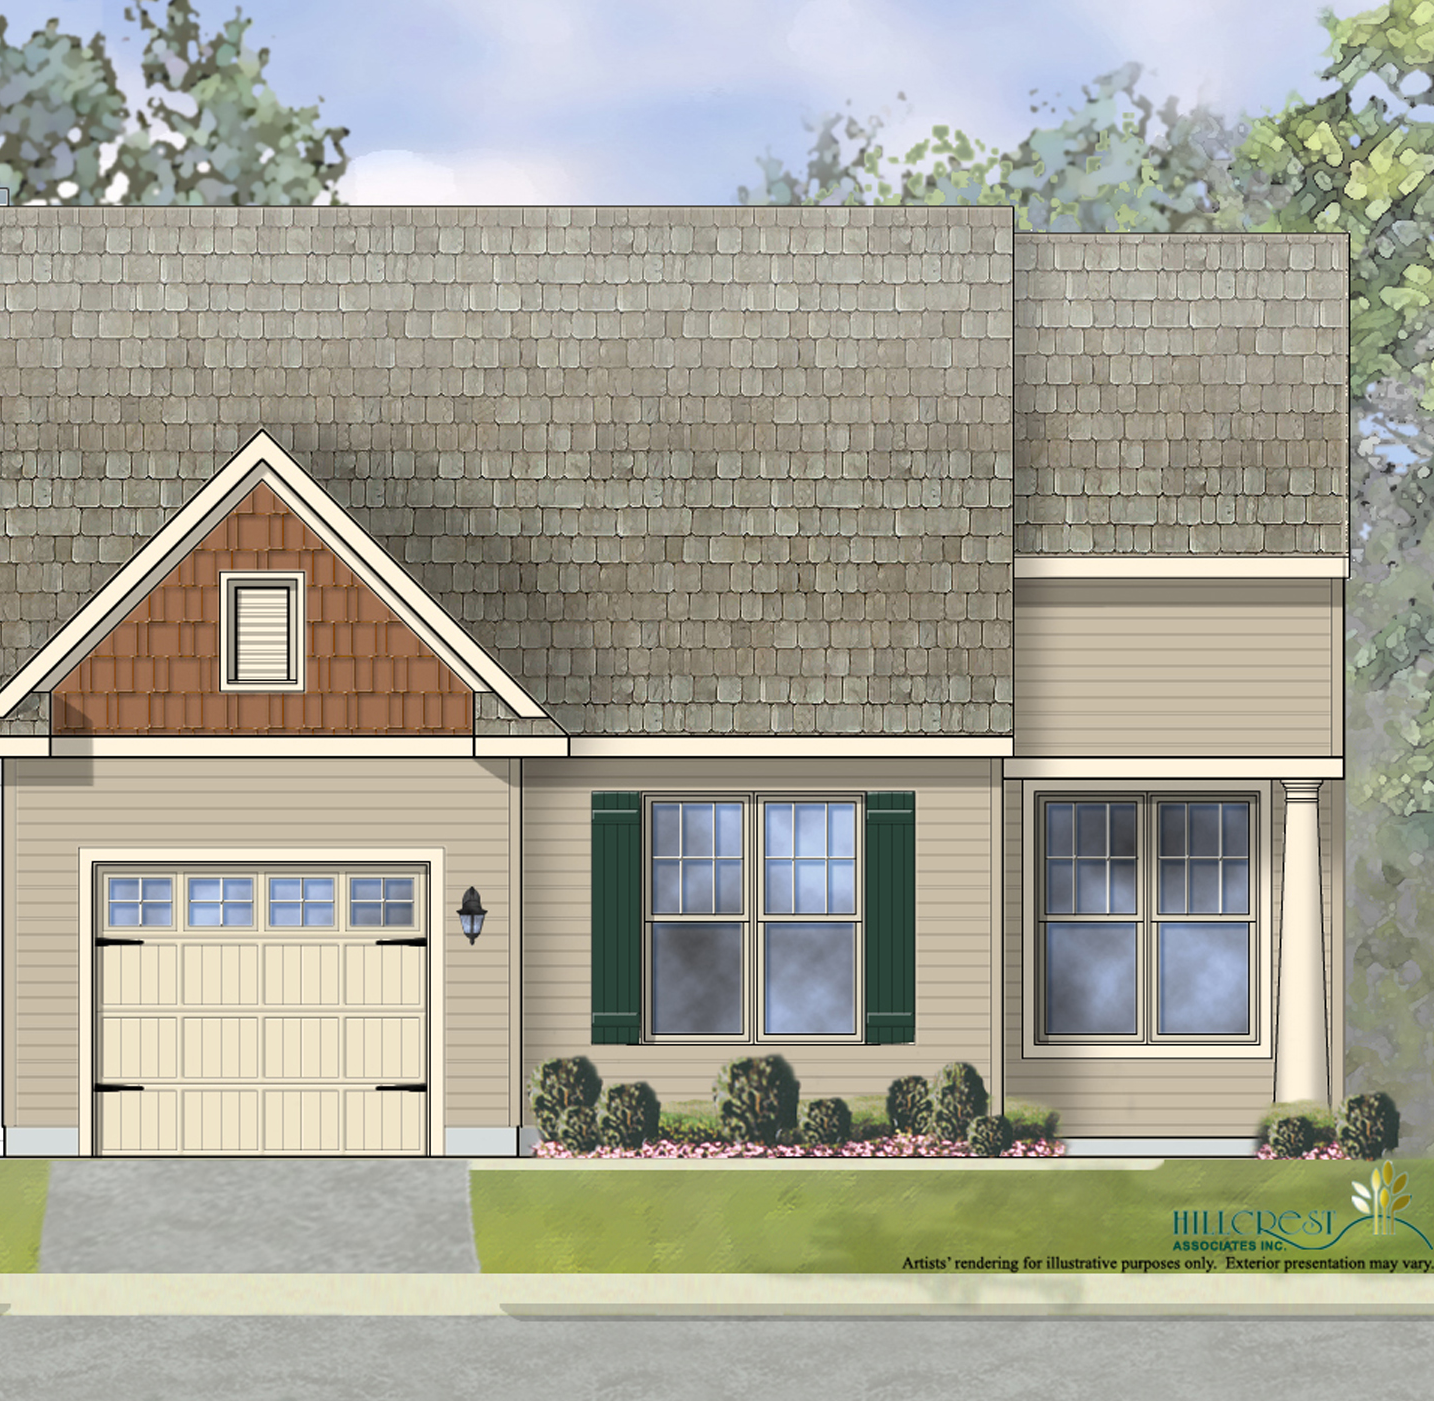 The Chatsworth Traditional End Unit Home with low maintenance vinyl siding